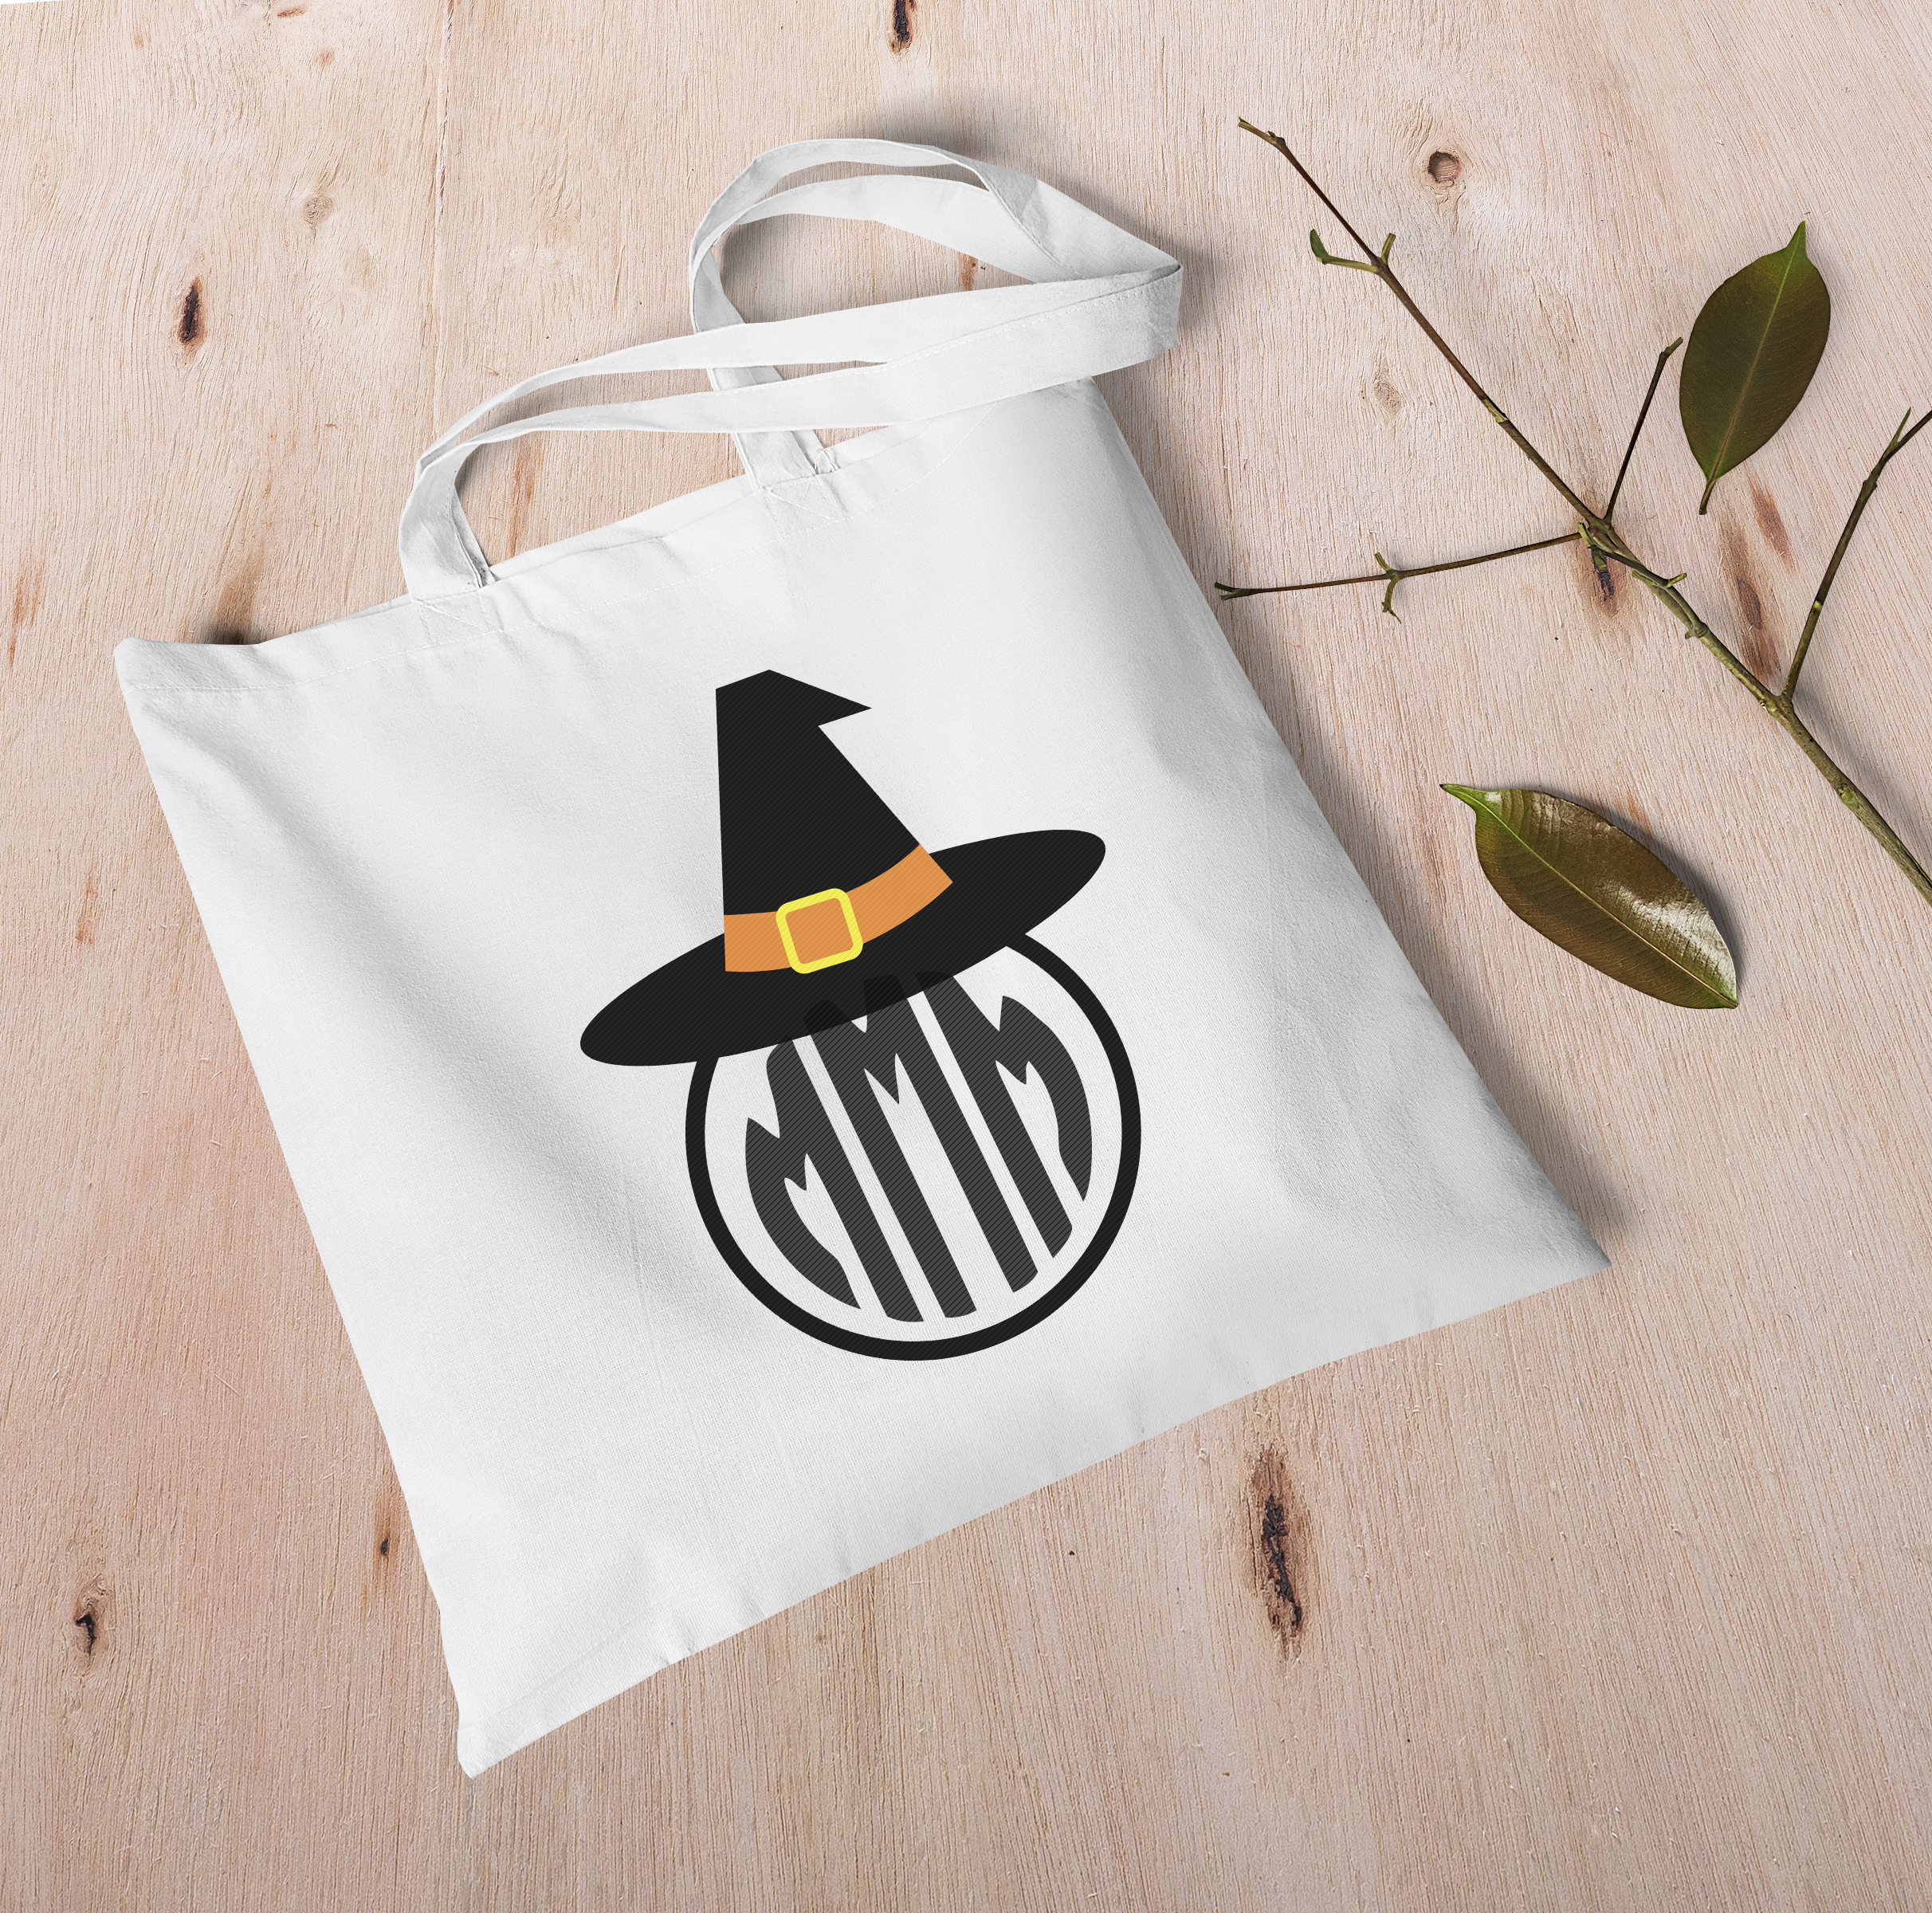 Batty for Bags: DIY Custom Halloween Treat Bags